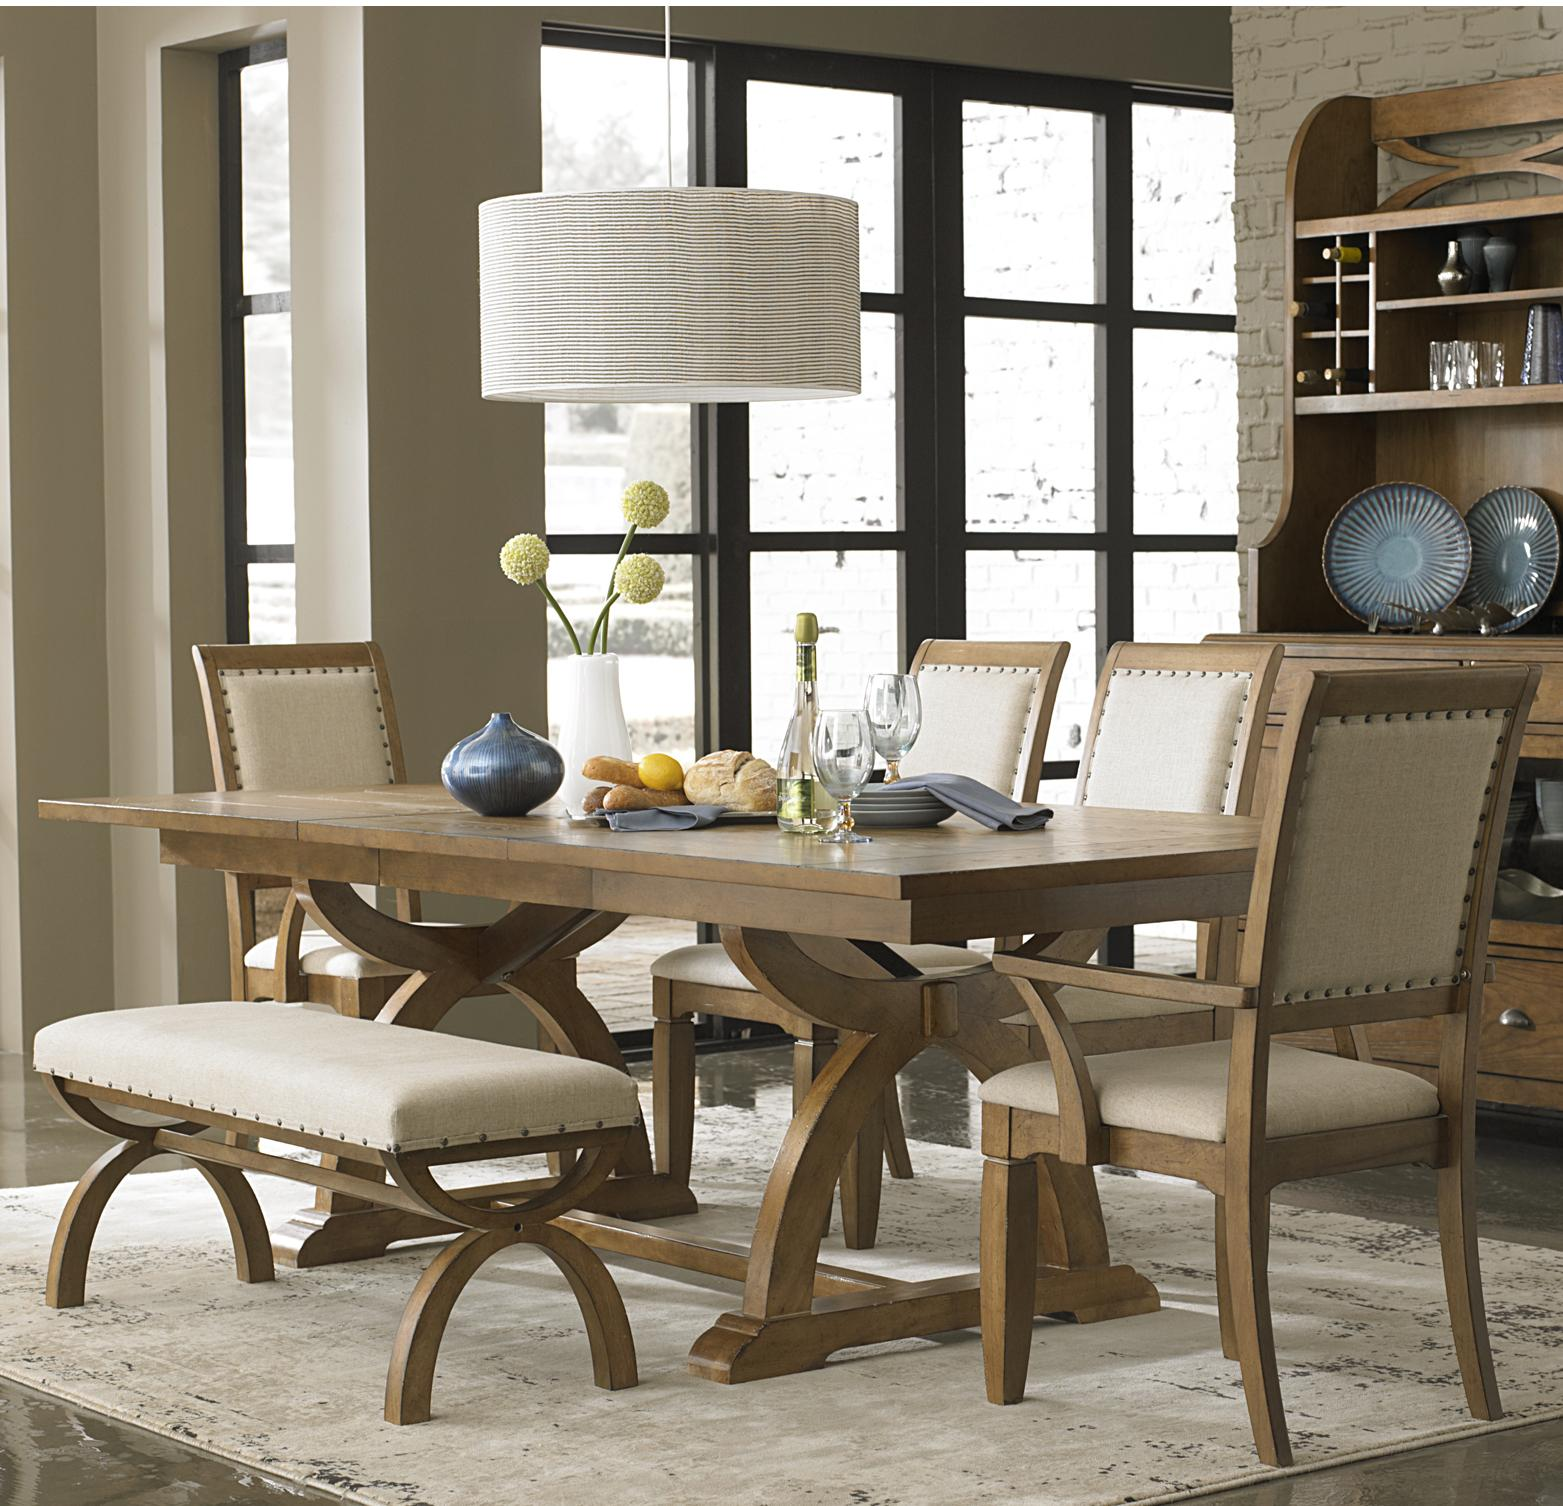 kitchen table bench 6 Piece Trestle Table Set with 4 Upholstered Chairs Dining Bench